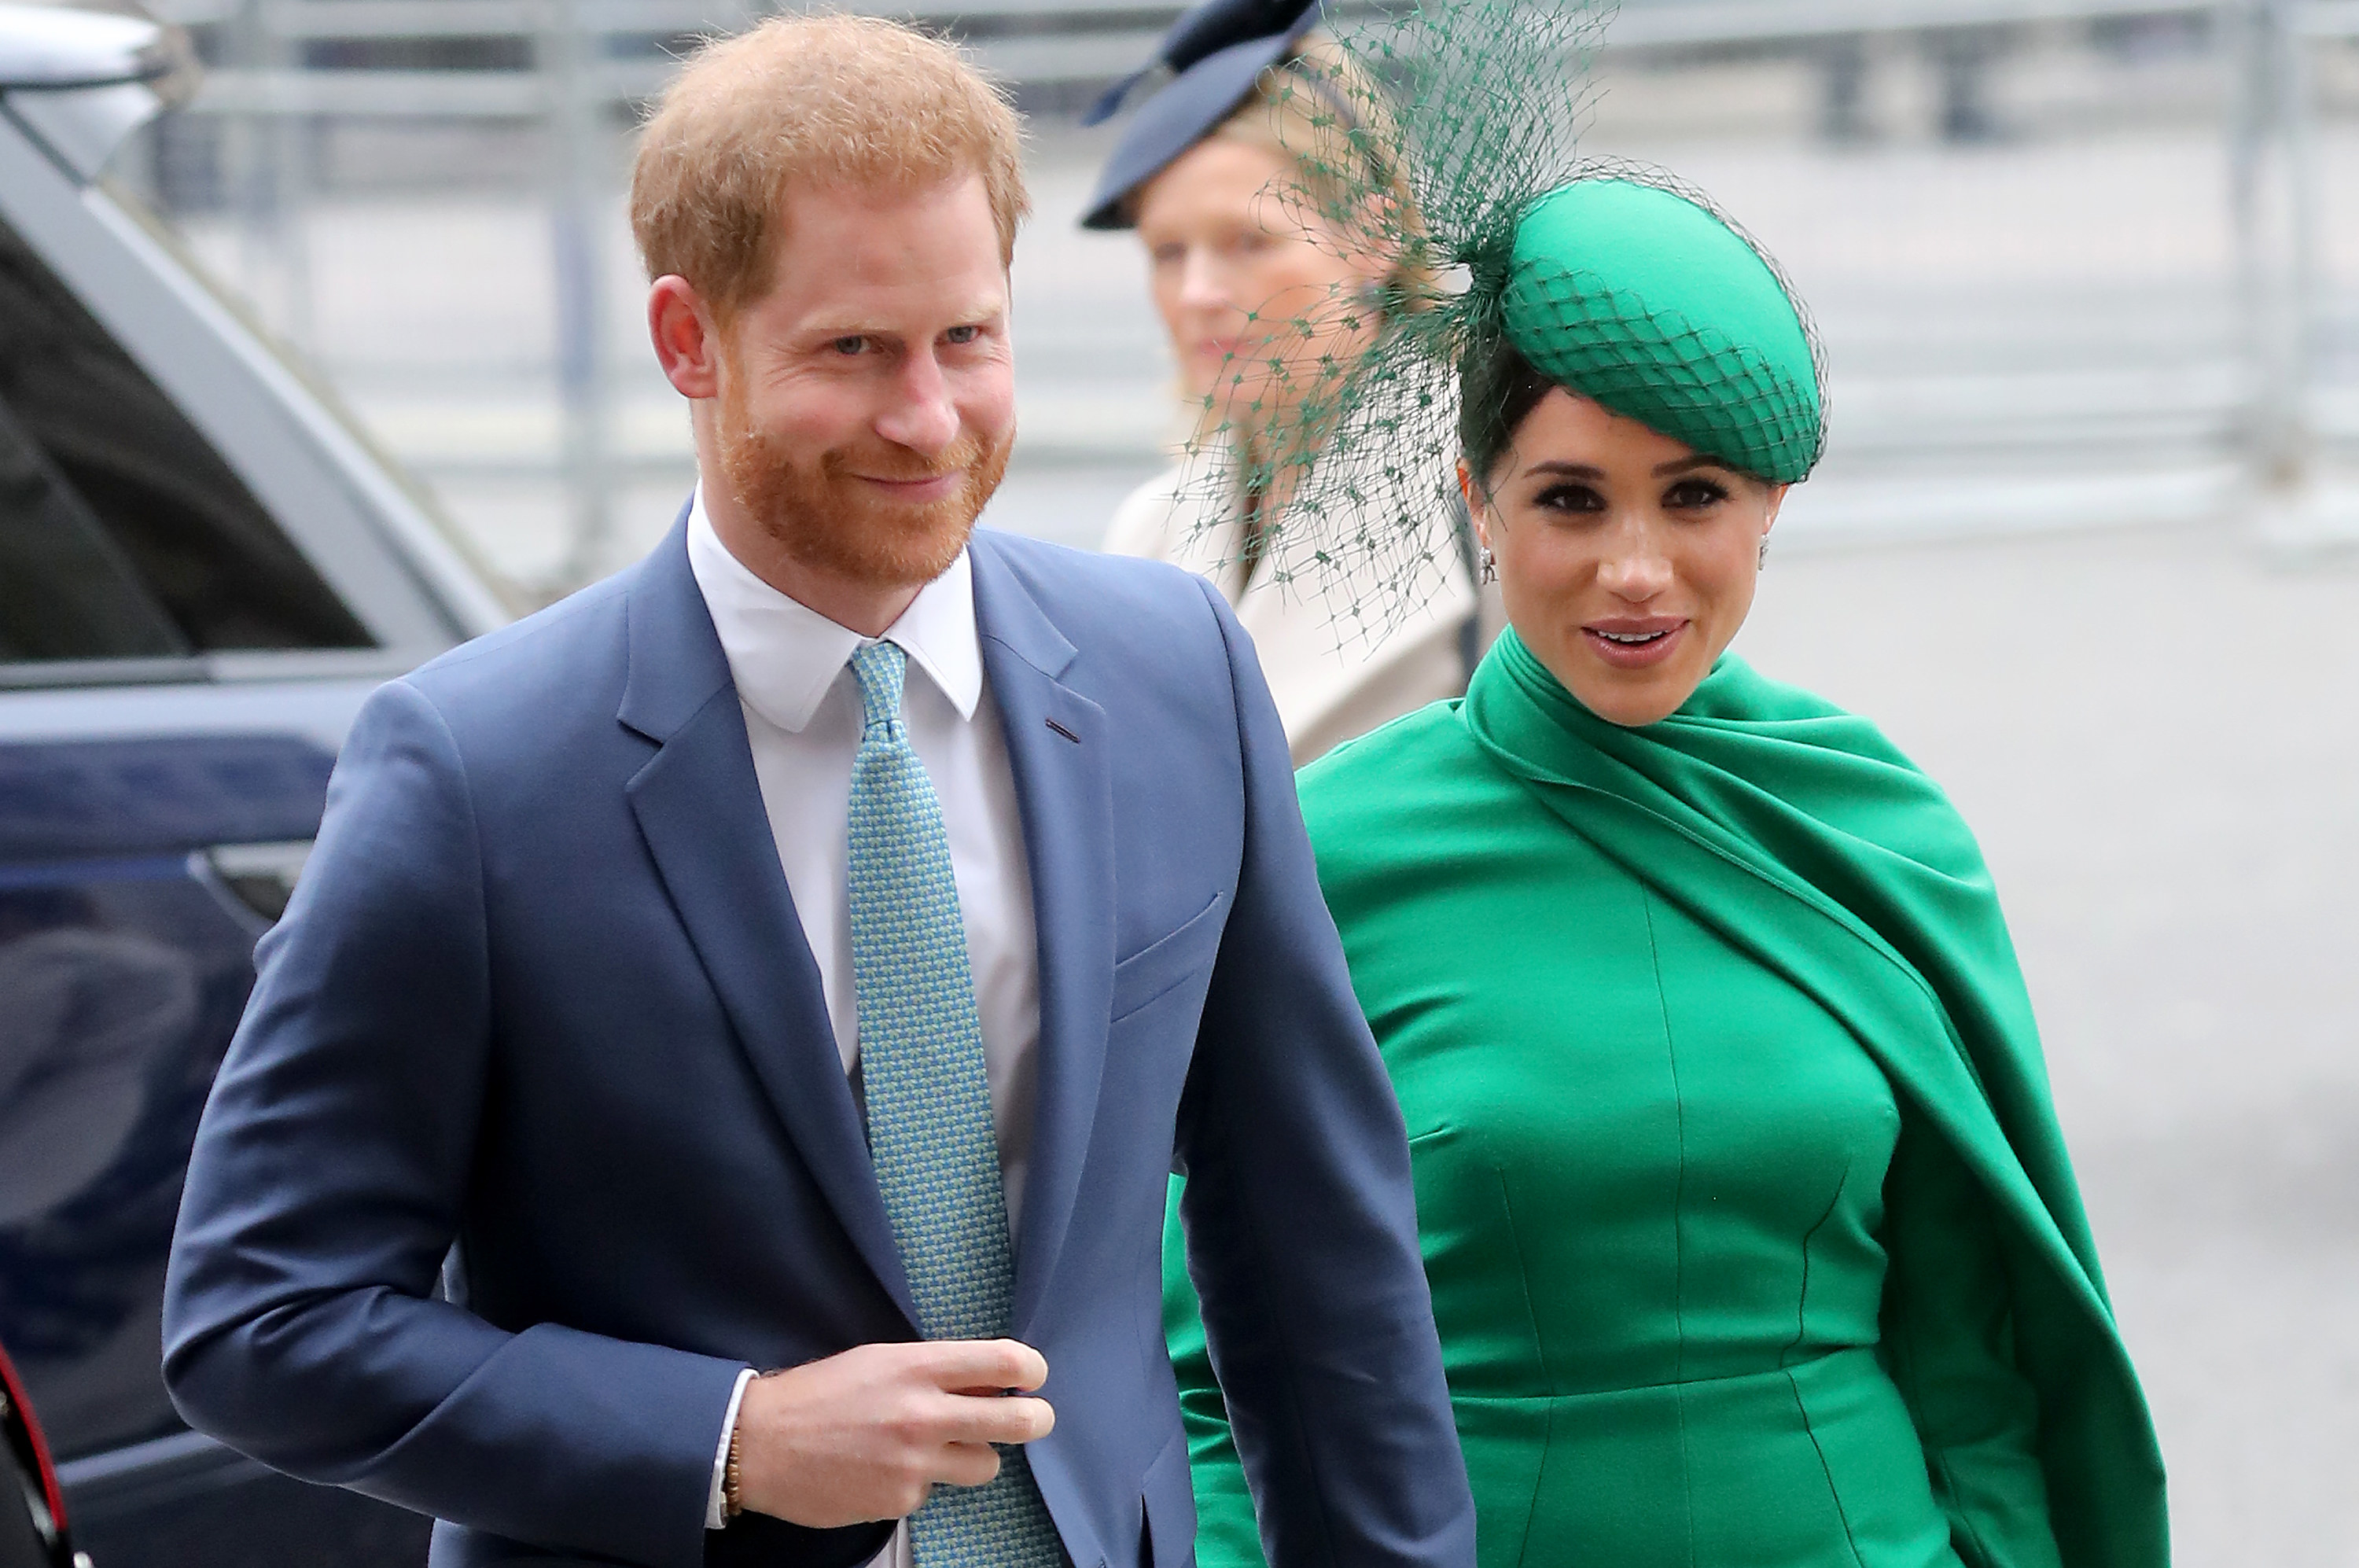 Meghan wears a formal green outfit while heading to an event with Harry